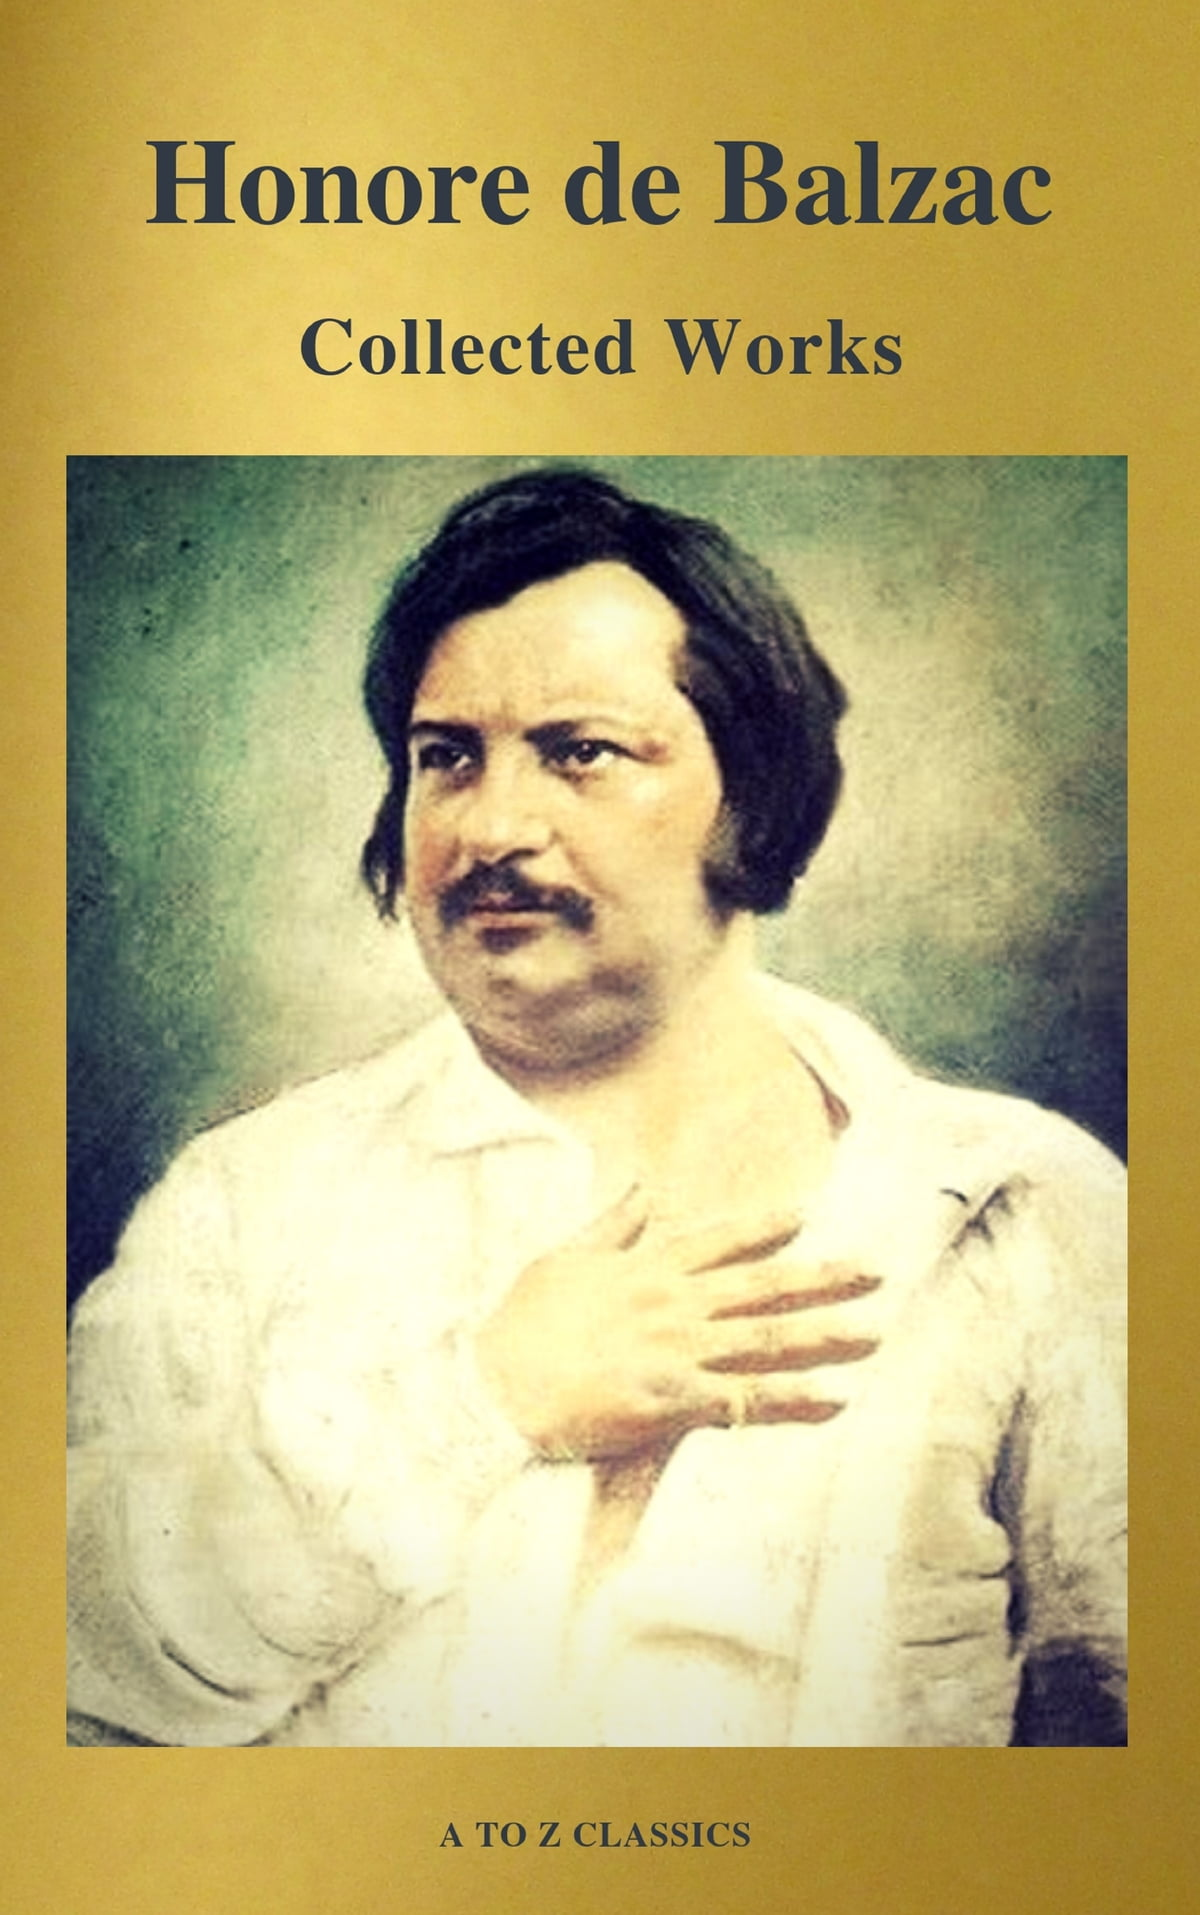 Collected works of honore de balzac with the complete human comedy a to z classics ebook by honore de balzac 9782379260056 rakuten kobo